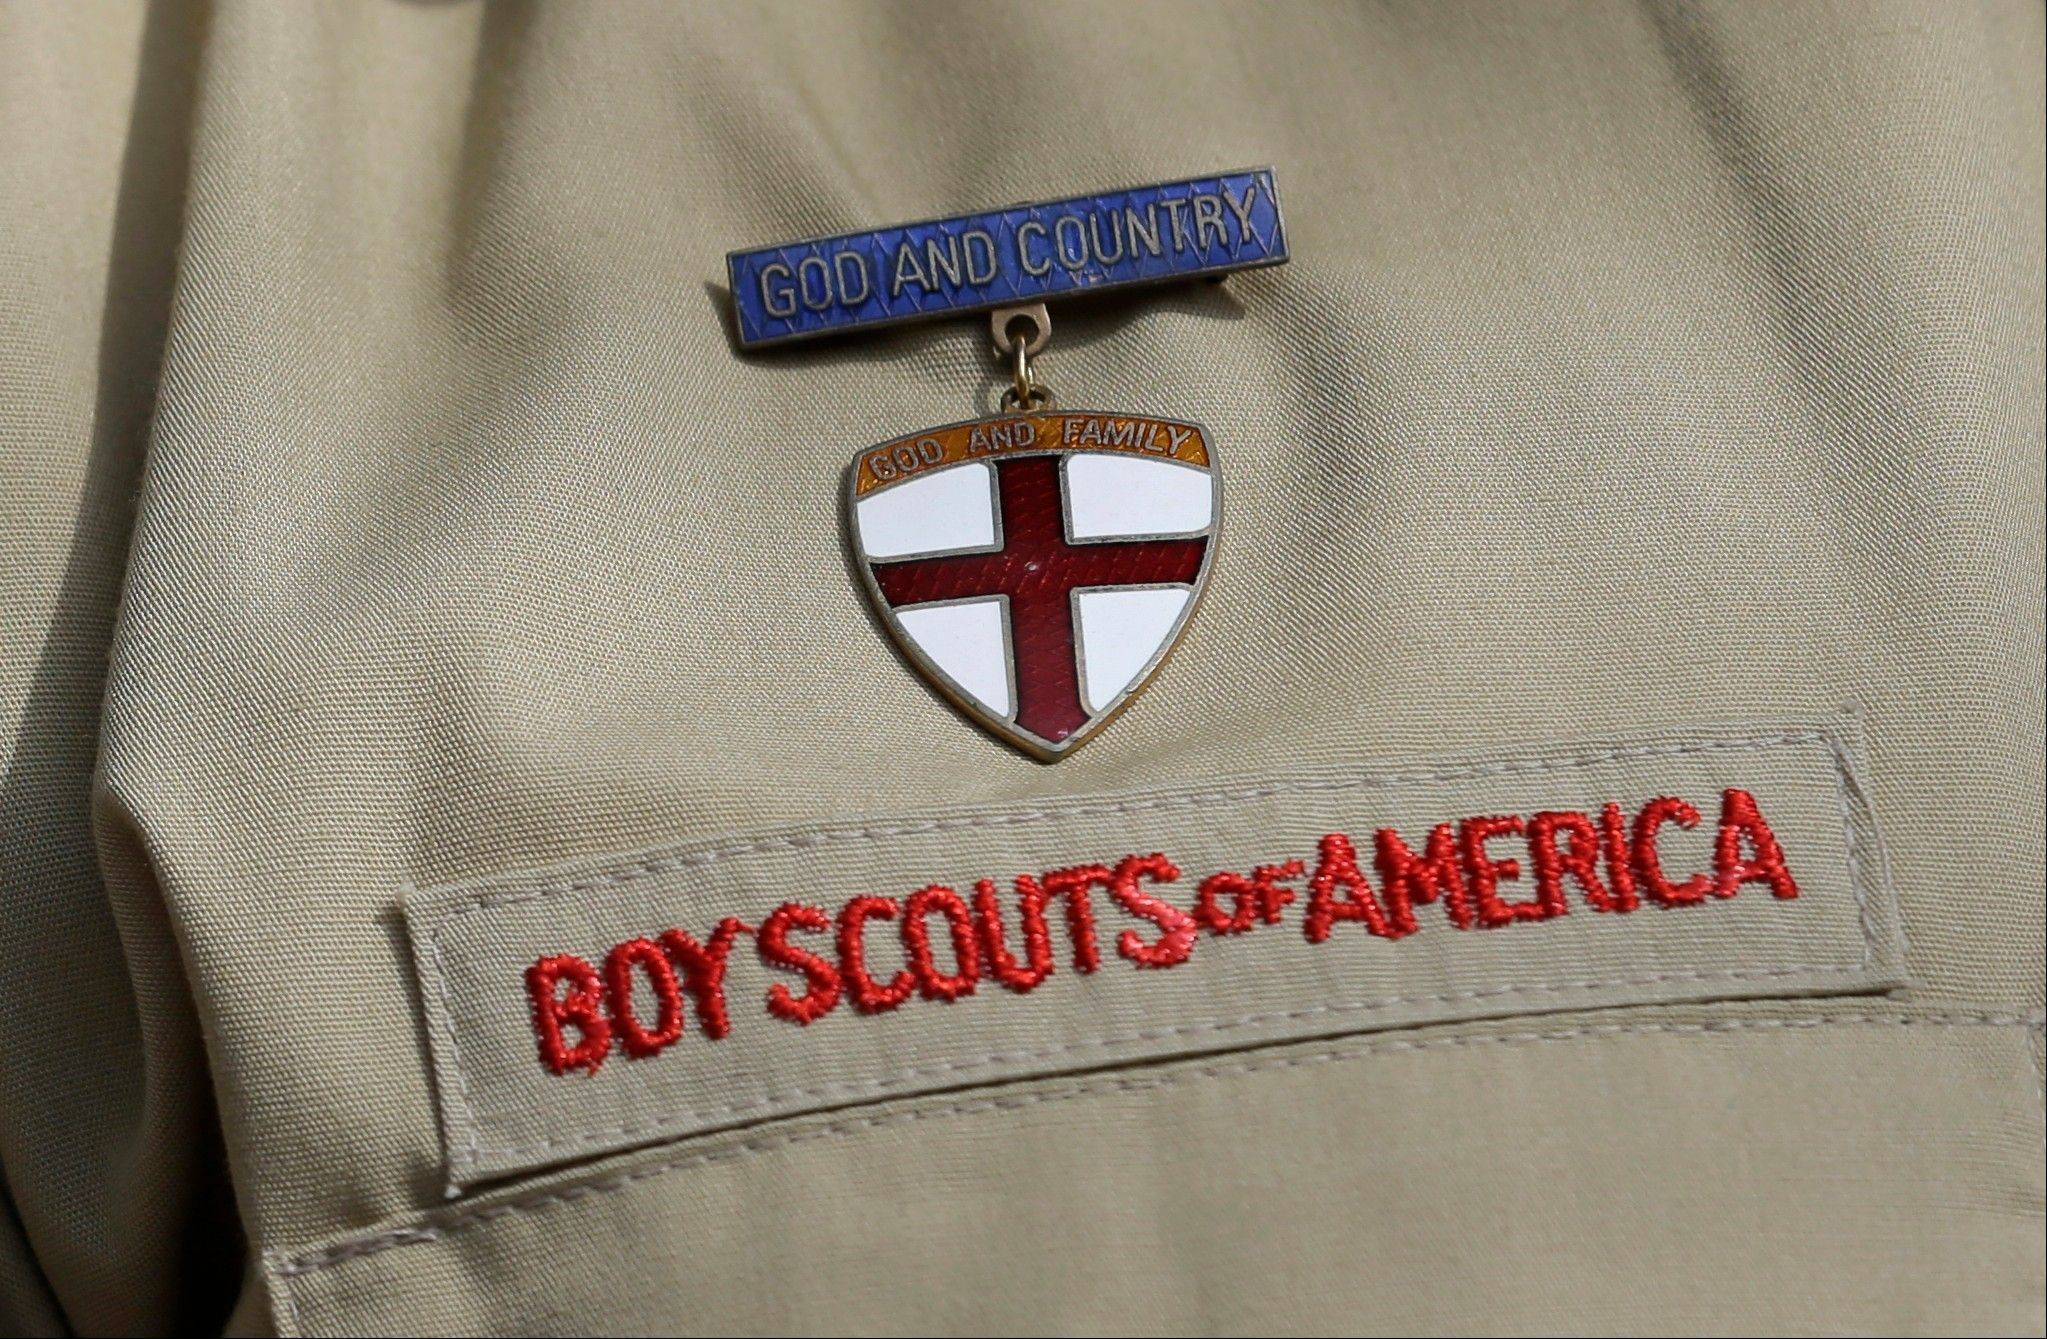 The Boy Scouts of America�s national executive board has delayed a decision on whether to lift its long-standing ban on gay scouts and leaders.